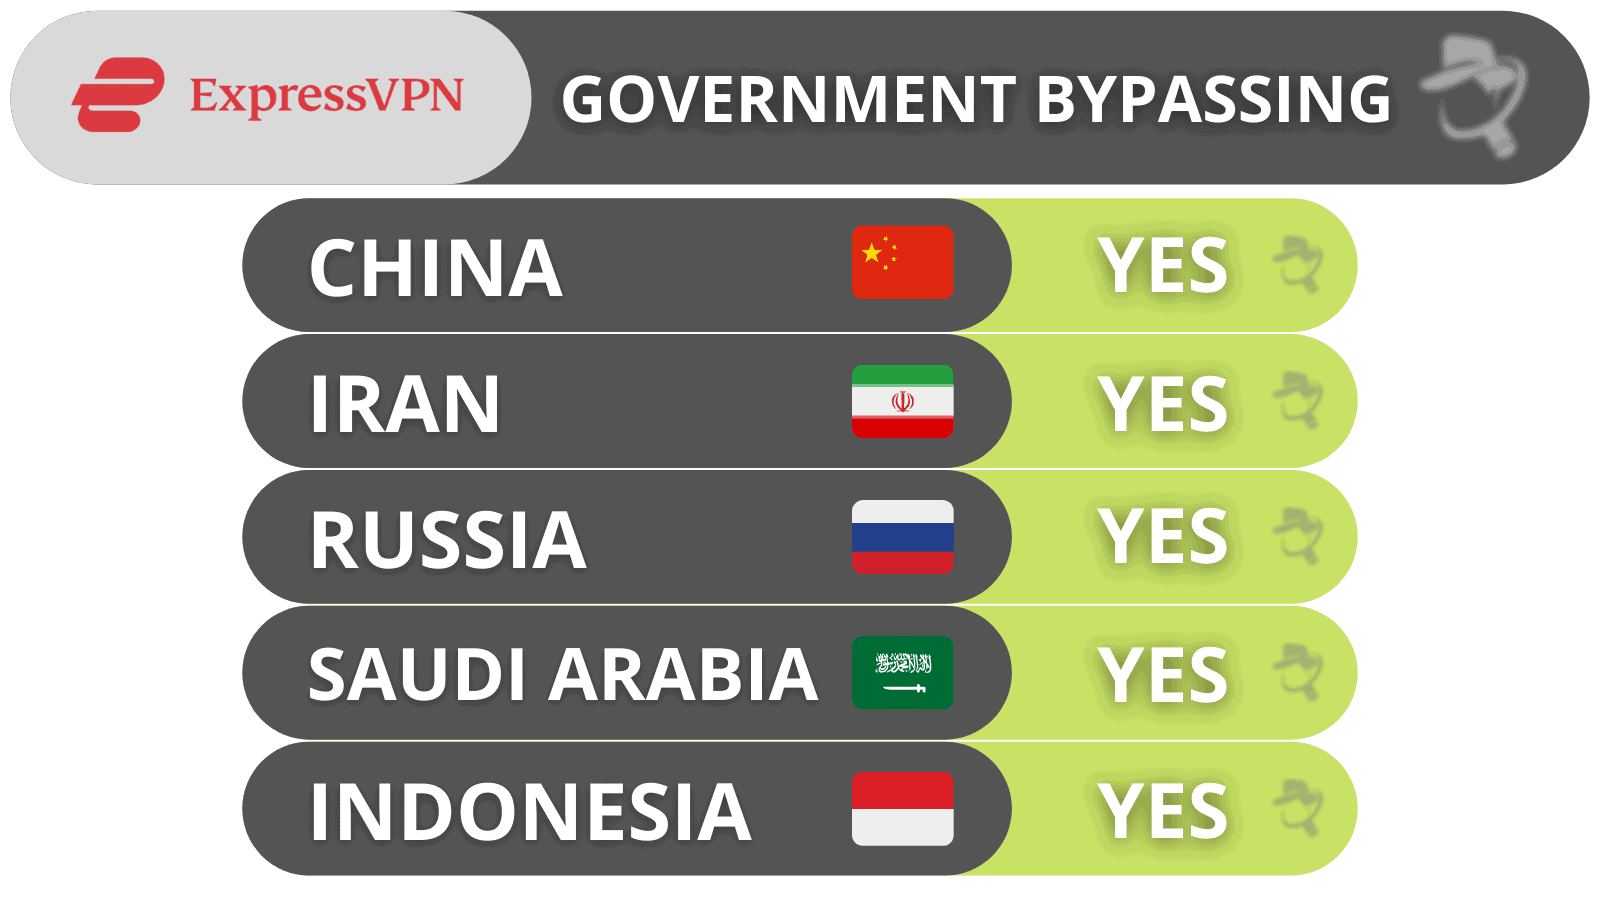 ExpressVPN Government Bypassing